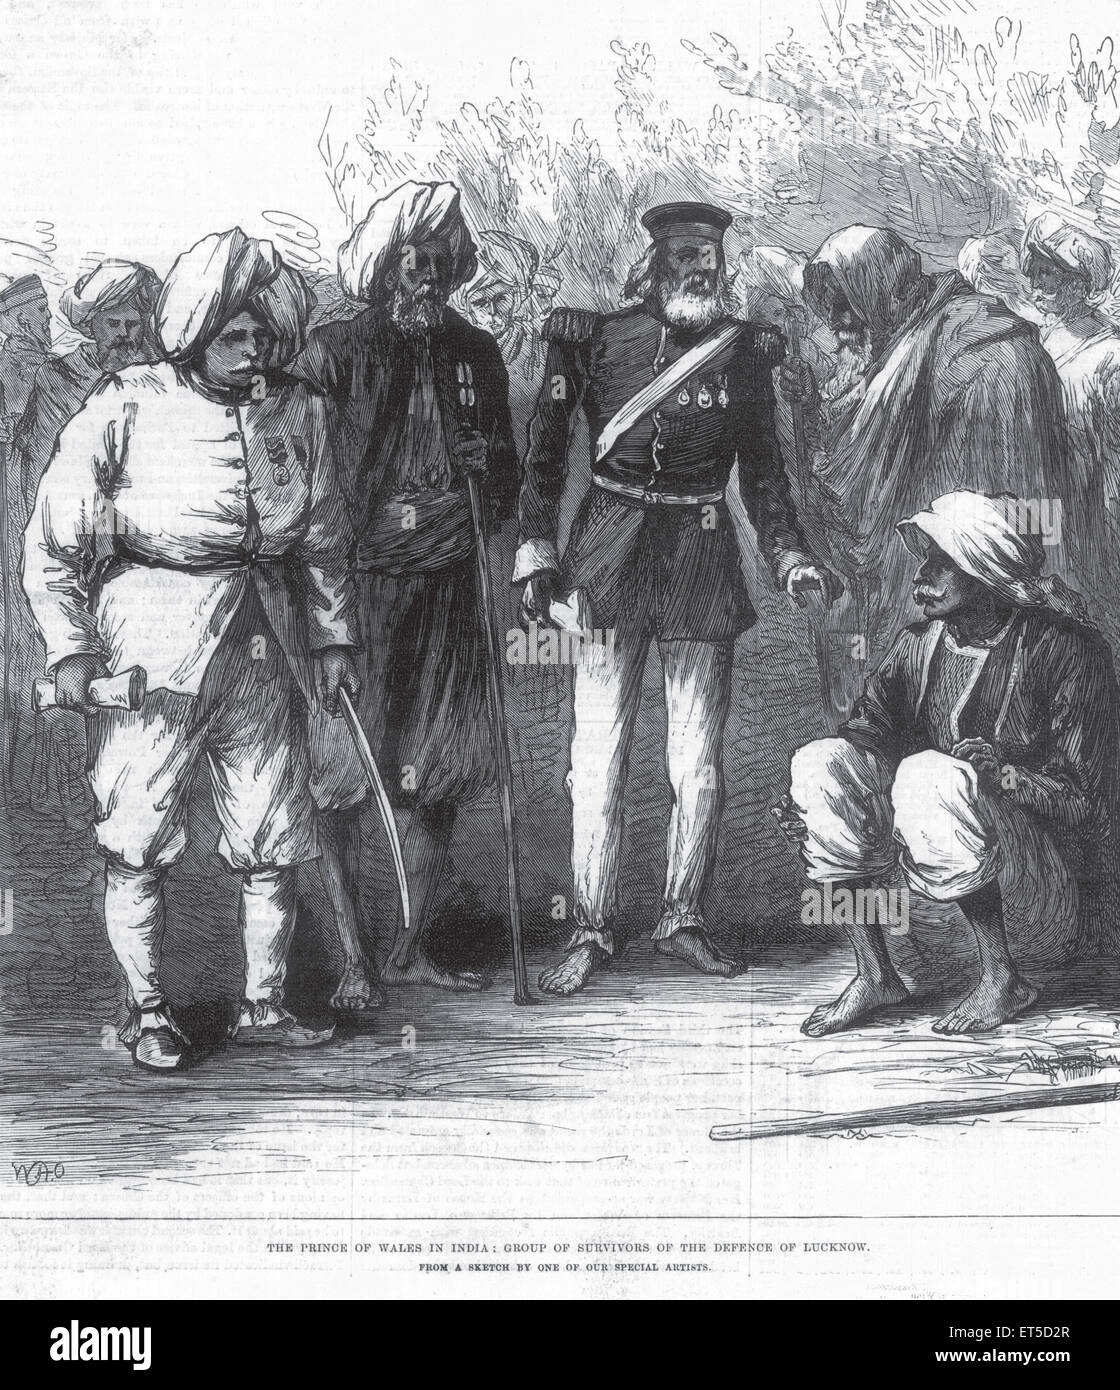 Royalty on Tour The Prince of Wales in India Group of survivors of the defense of Lucknow ; Uttar Pradesh ; India - Stock Image